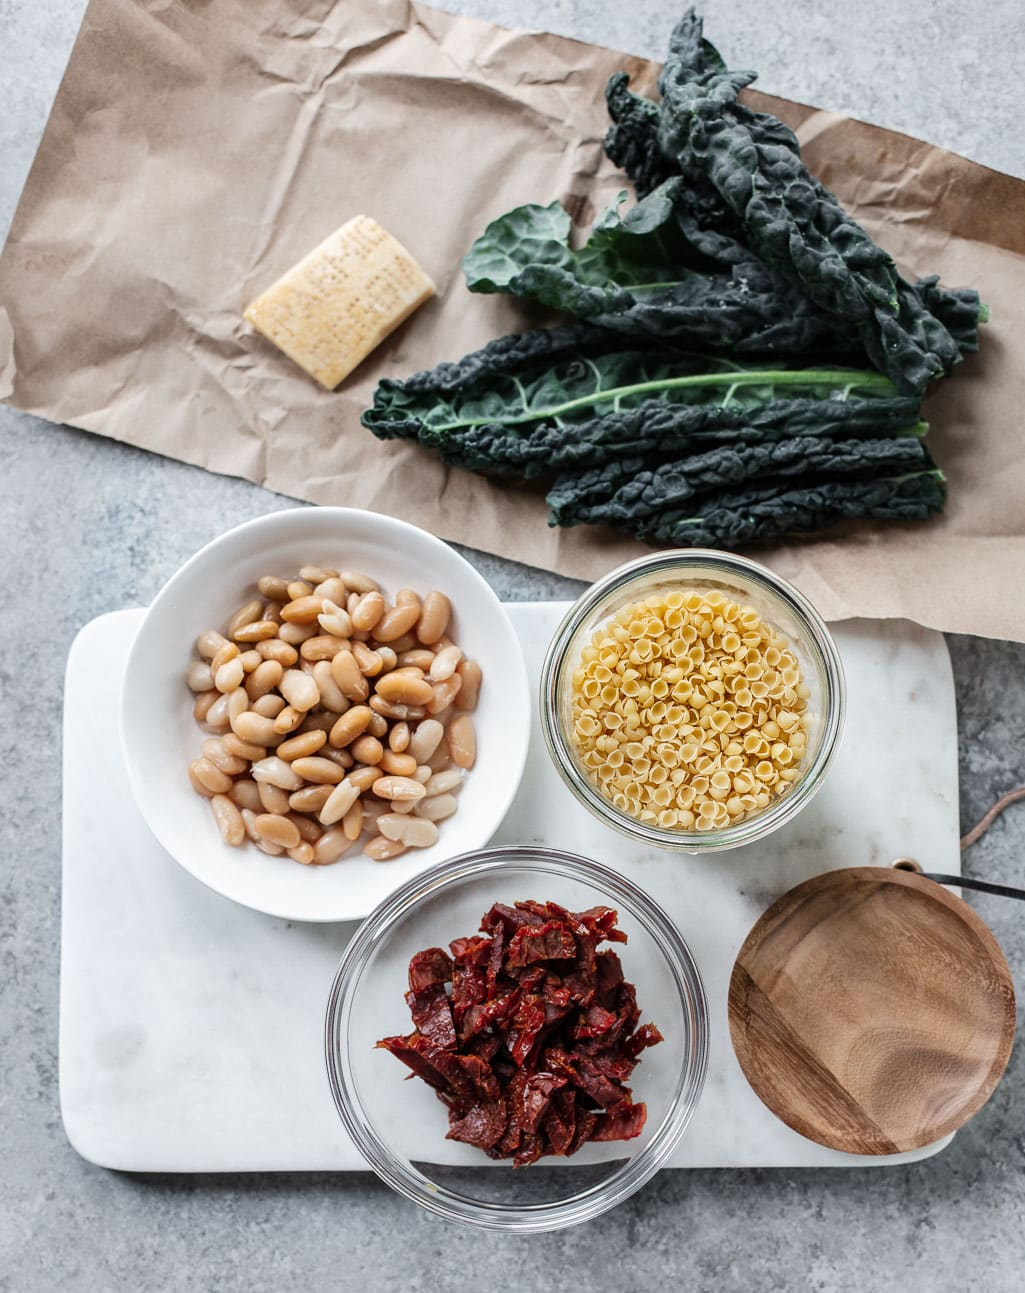 Ingredients for Creamy Instant Pot Pasta Fagioli with Kale